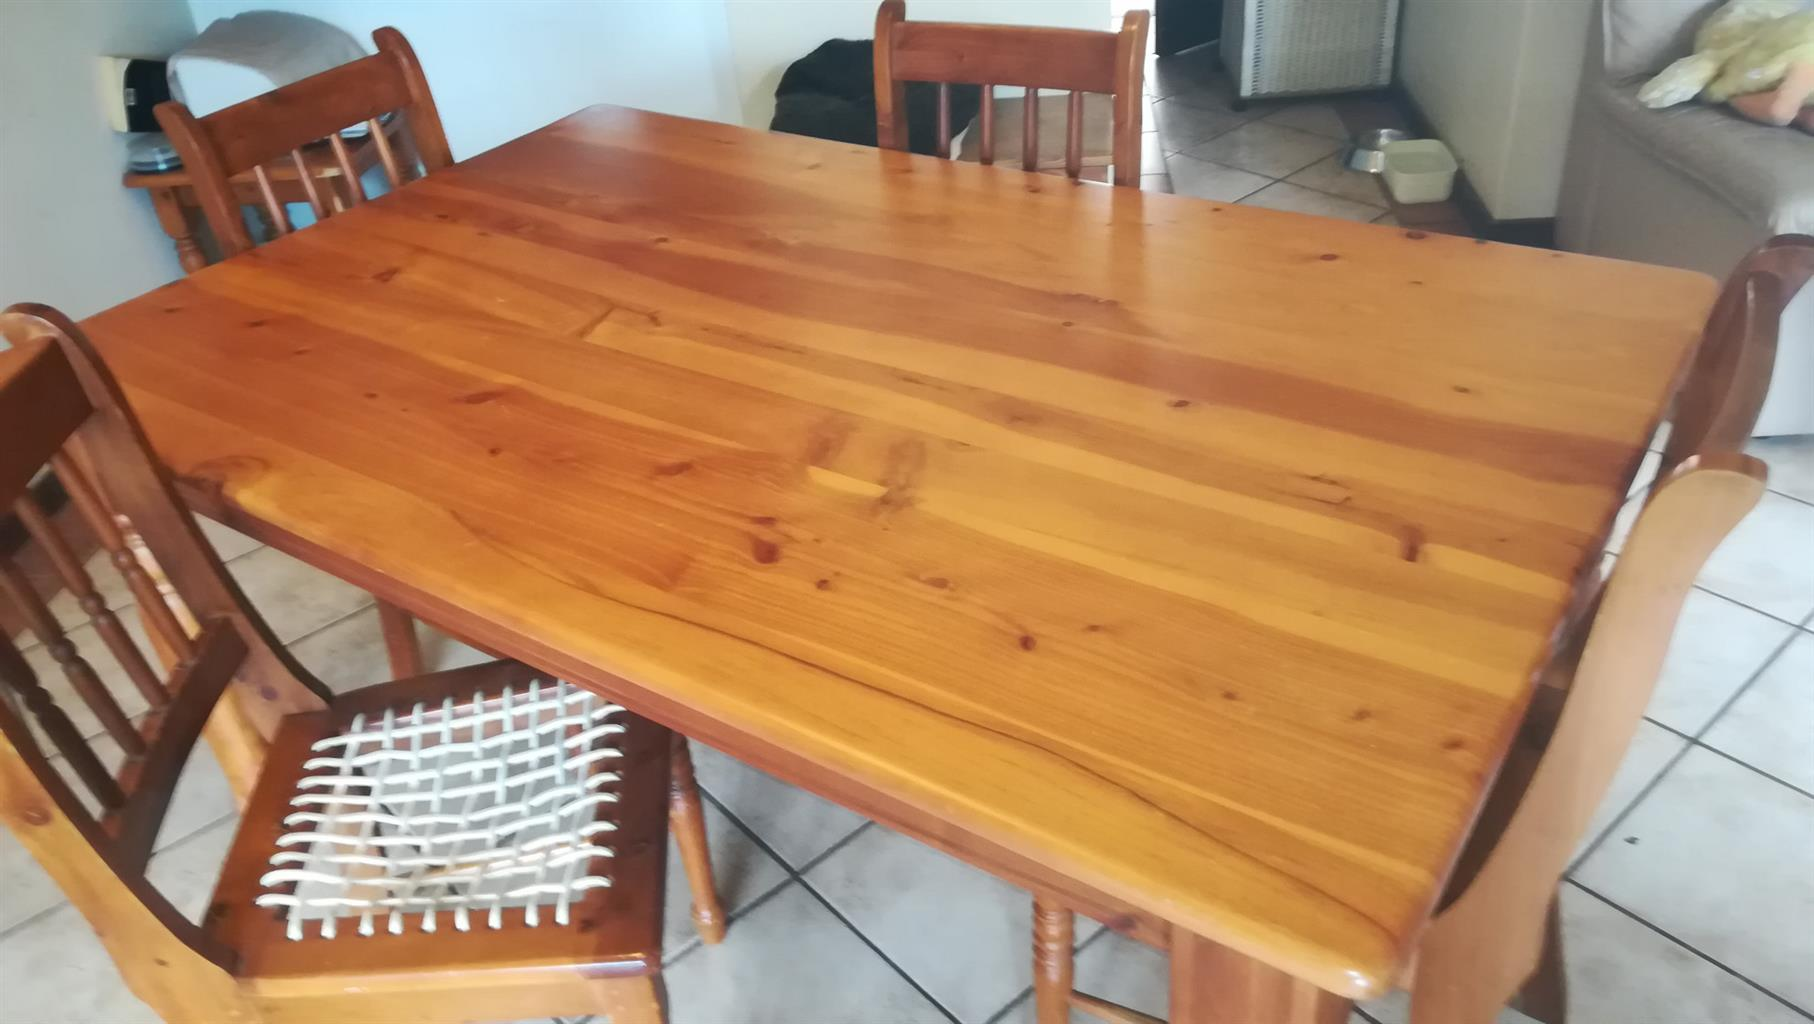 Oregon Pine And Yellow Wood Dining Table With Riempie Chairs Junk